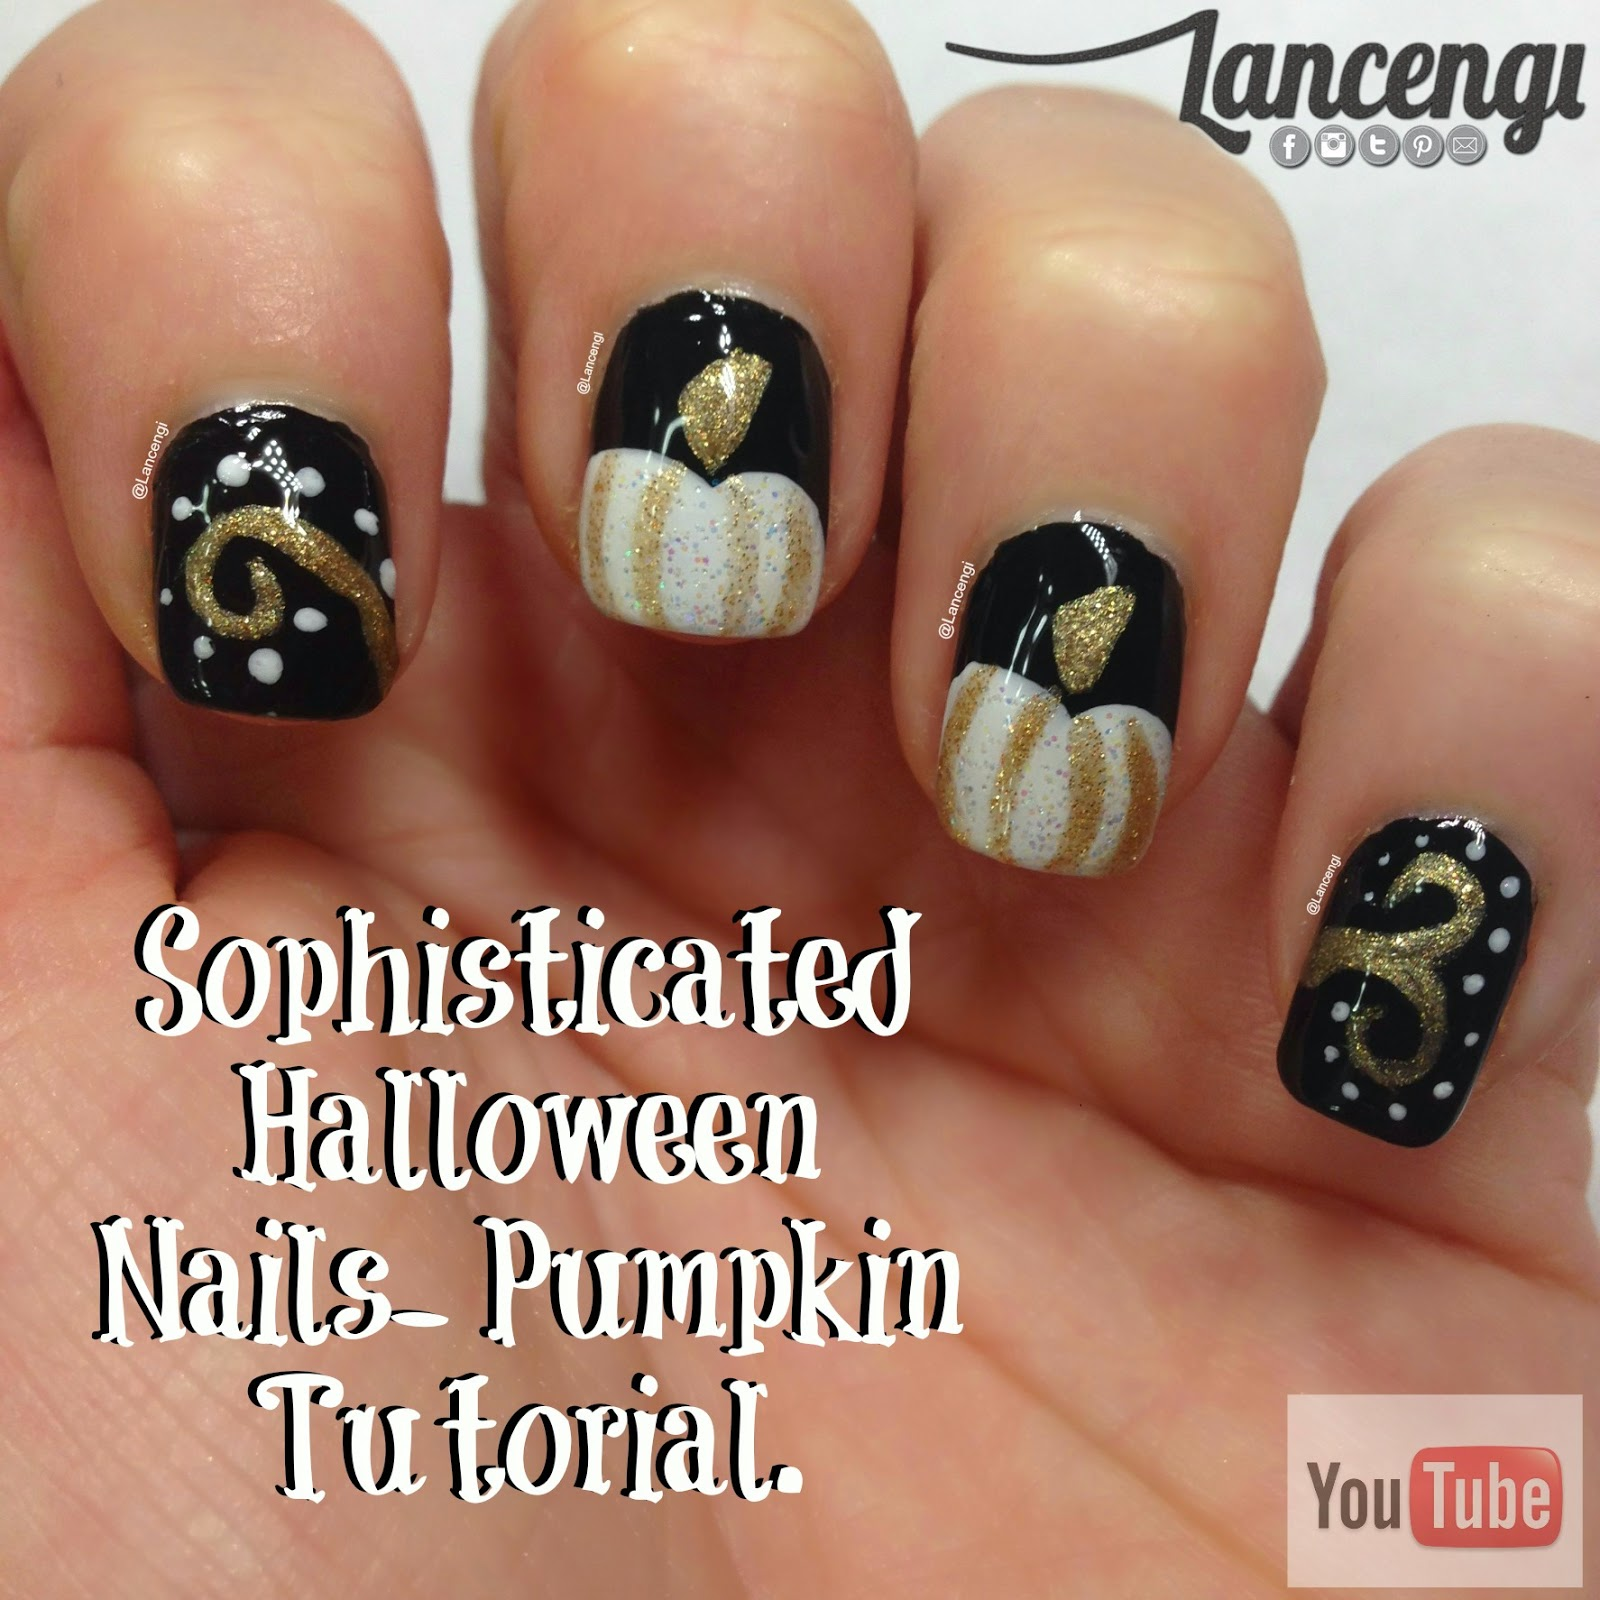 Top 3 pumpkin nails for fall lancengi manicure 2 sophisticated pumpkin manicure 300 prinsesfo Image collections